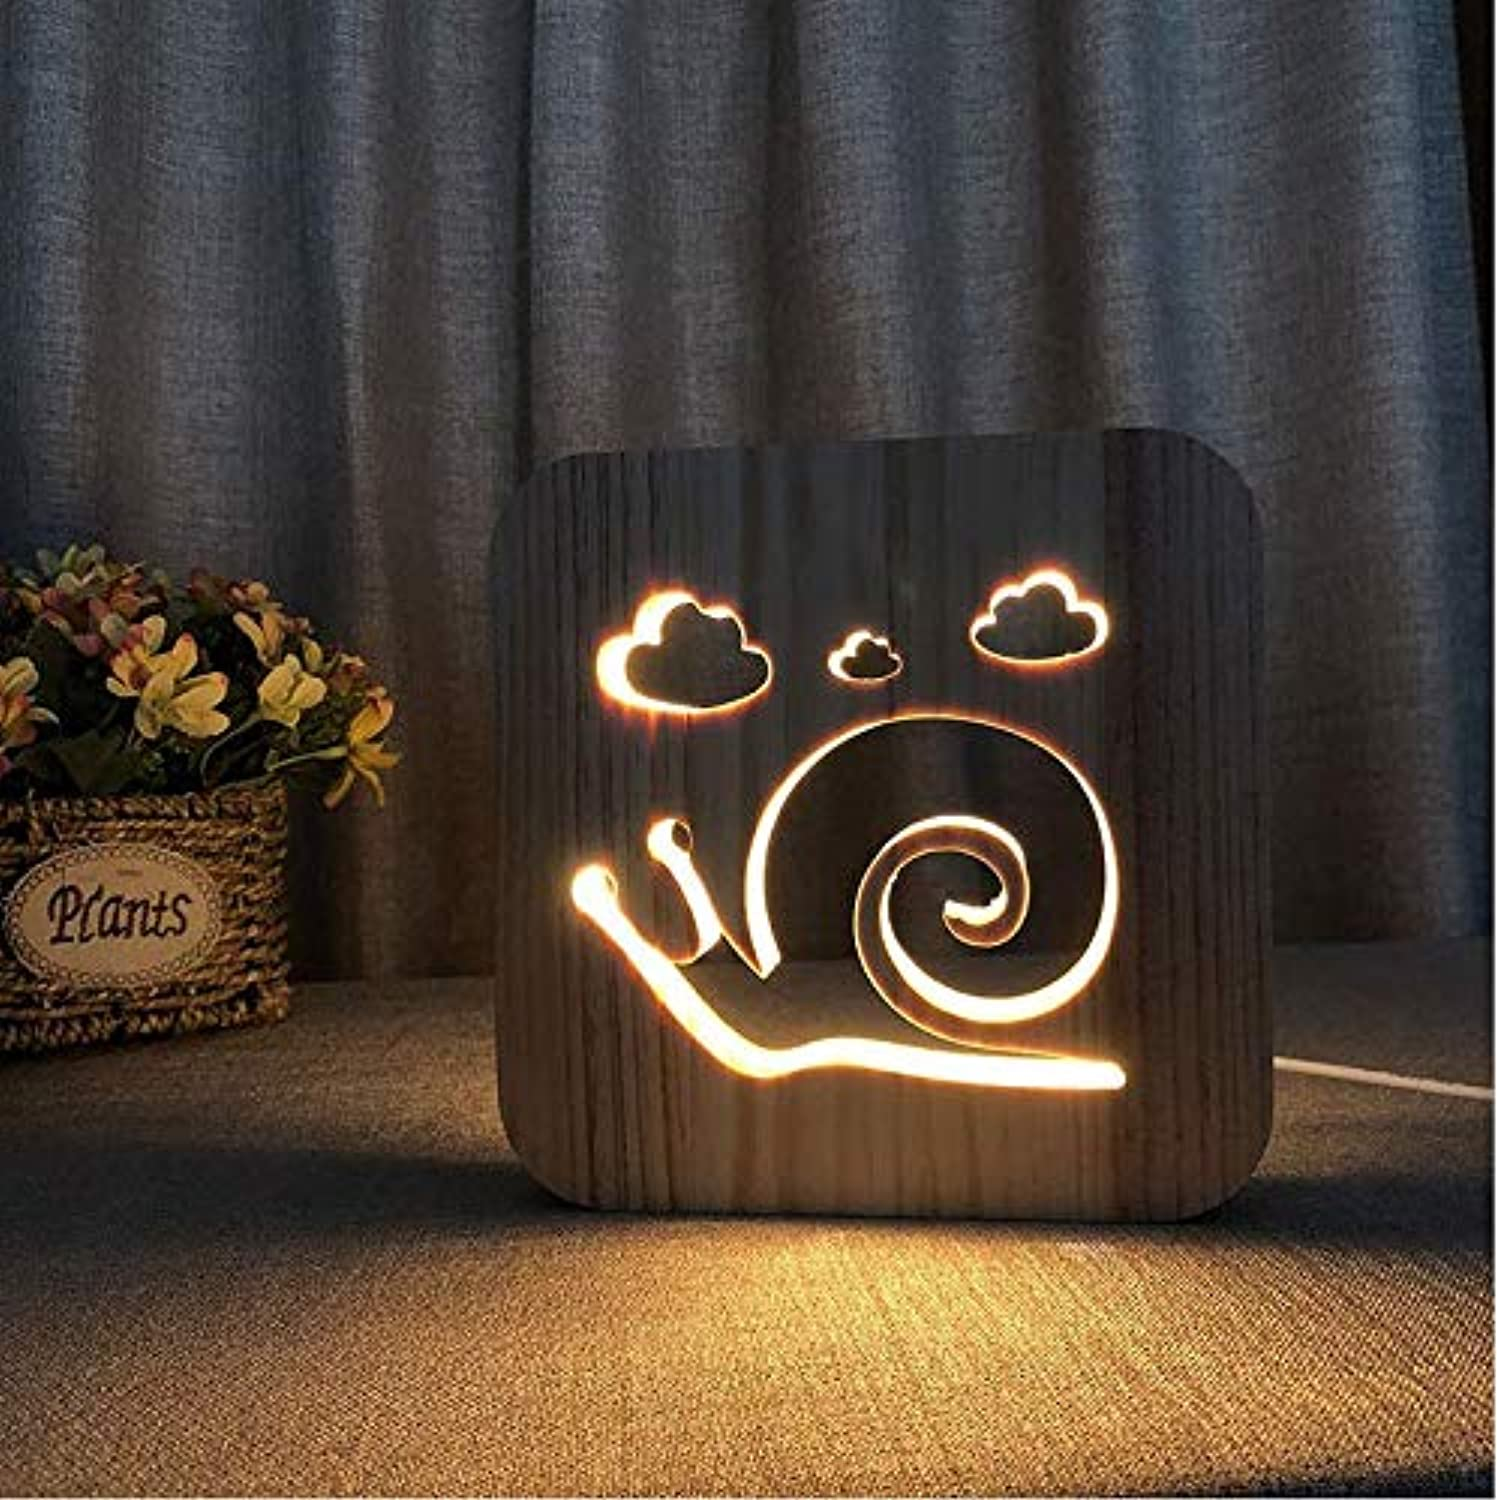 Hnfsliuhao Lamps Led Wooden Lighting Magical Snail Shadow 3D Wood Mood Lamp USB Table Desk Lamp Decorative Night Light for Bedroom Decor